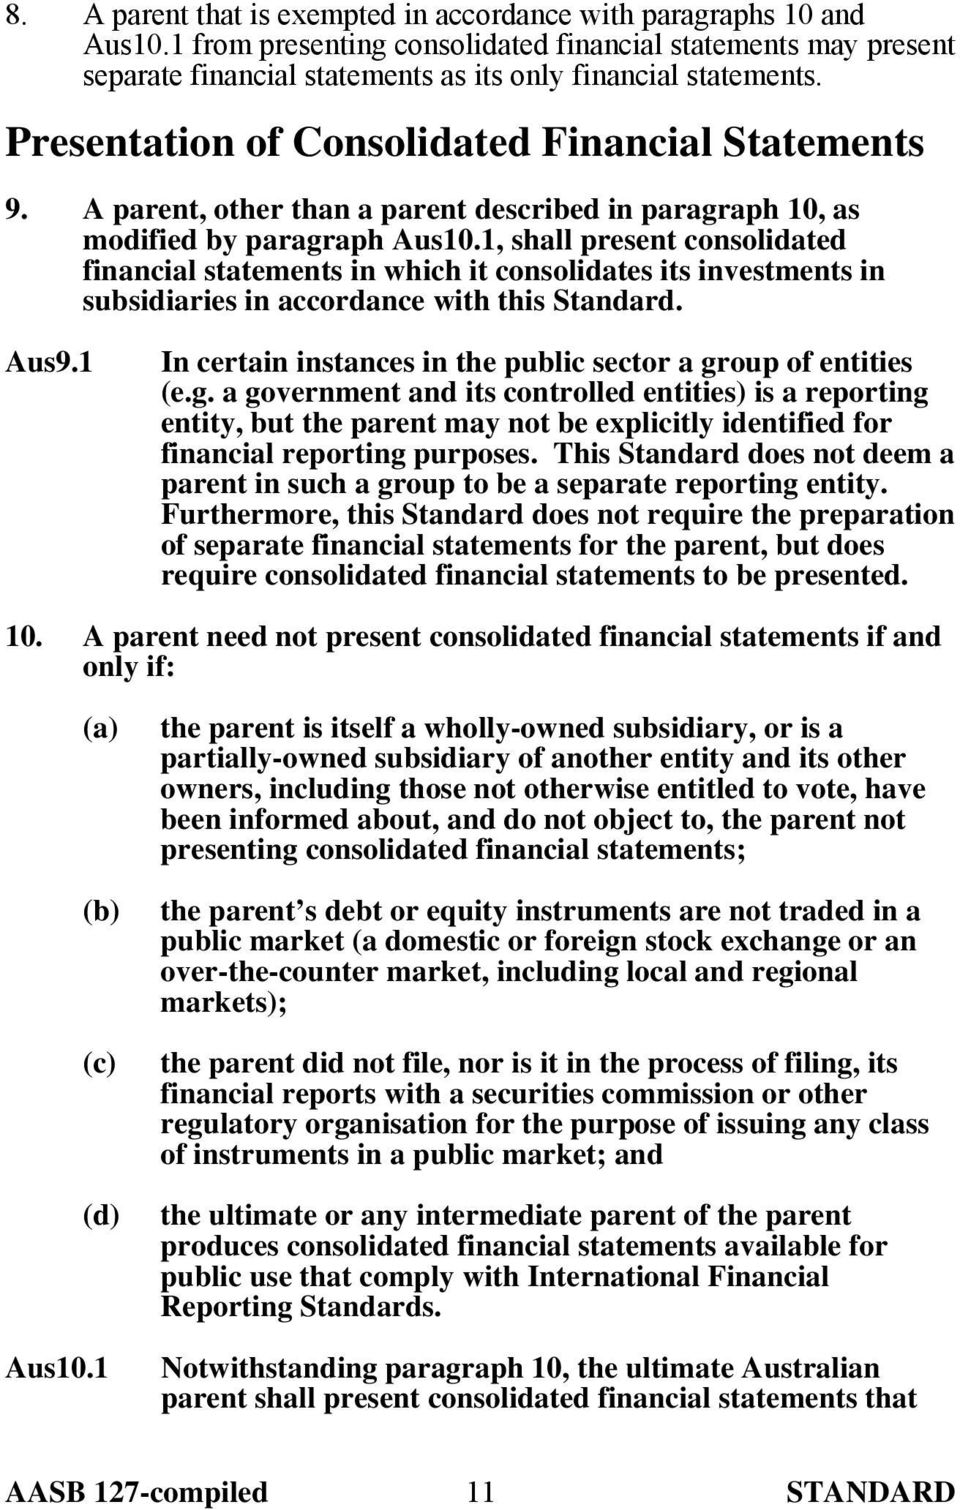 1, shall present consolidated financial statements in which it consolidates its investments in subsidiaries in accordance with this Standard. Aus9.